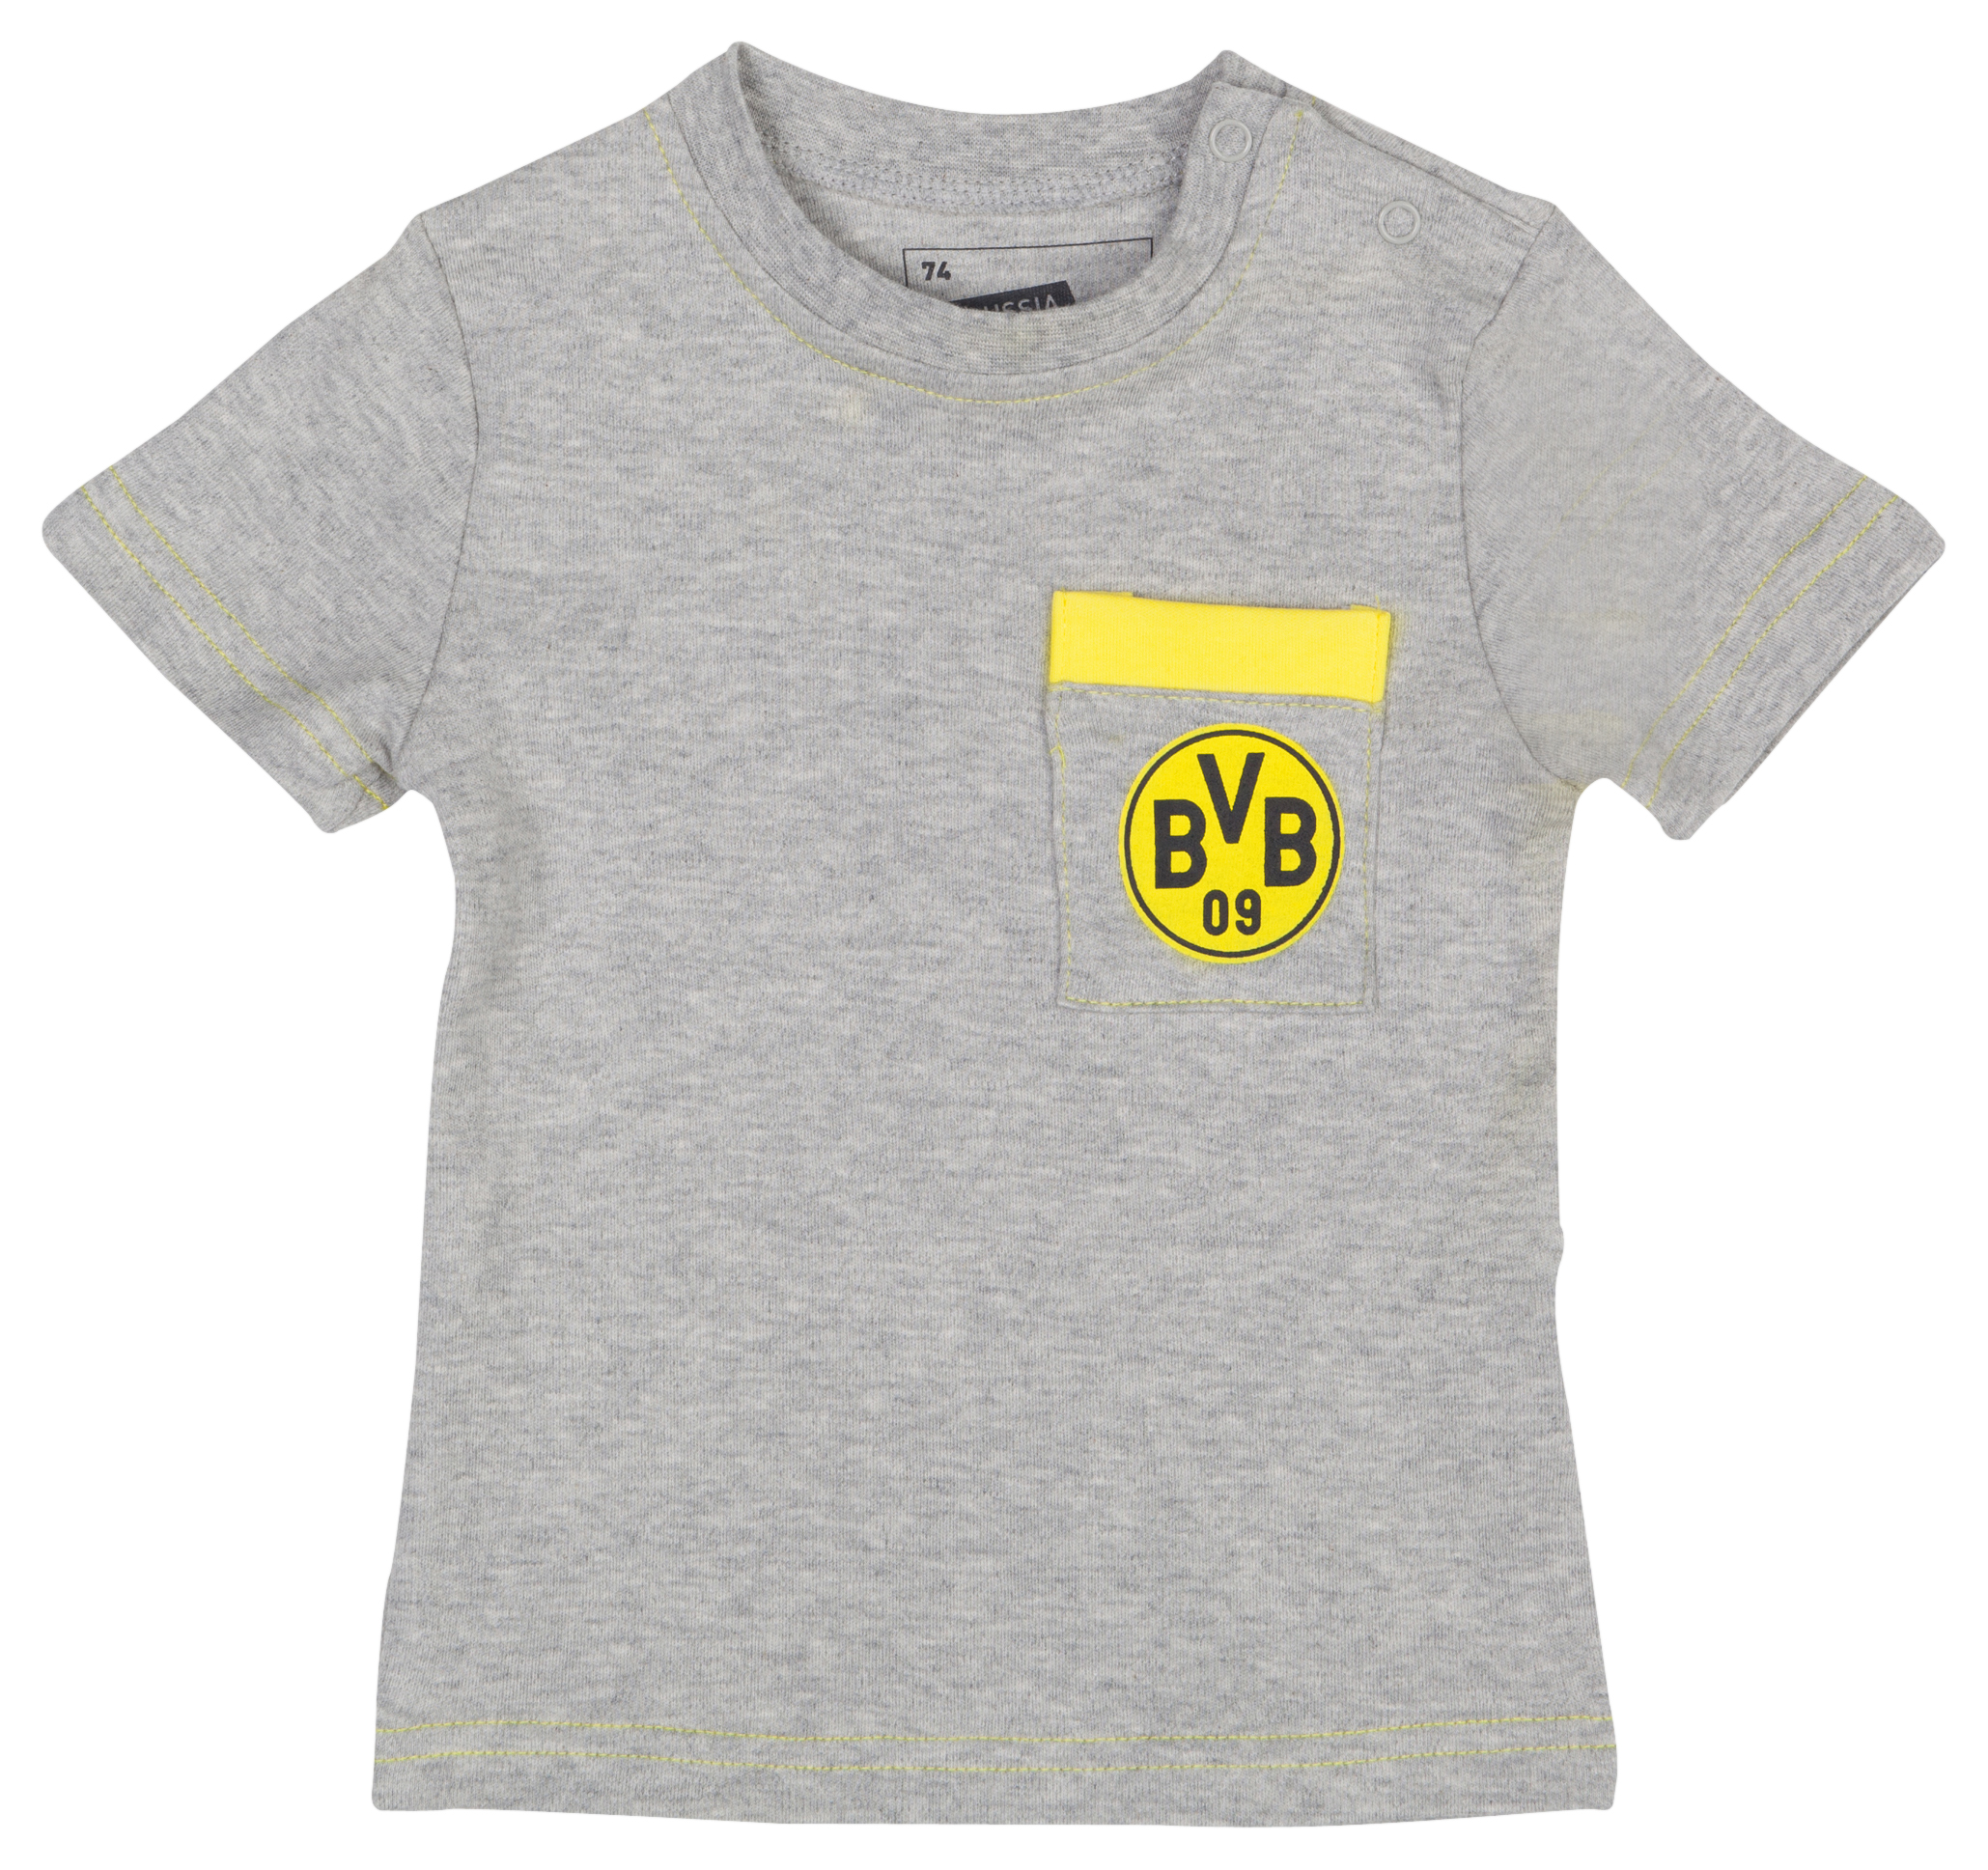 BVB Breast Pocket T-Shirt Toddlers Grey